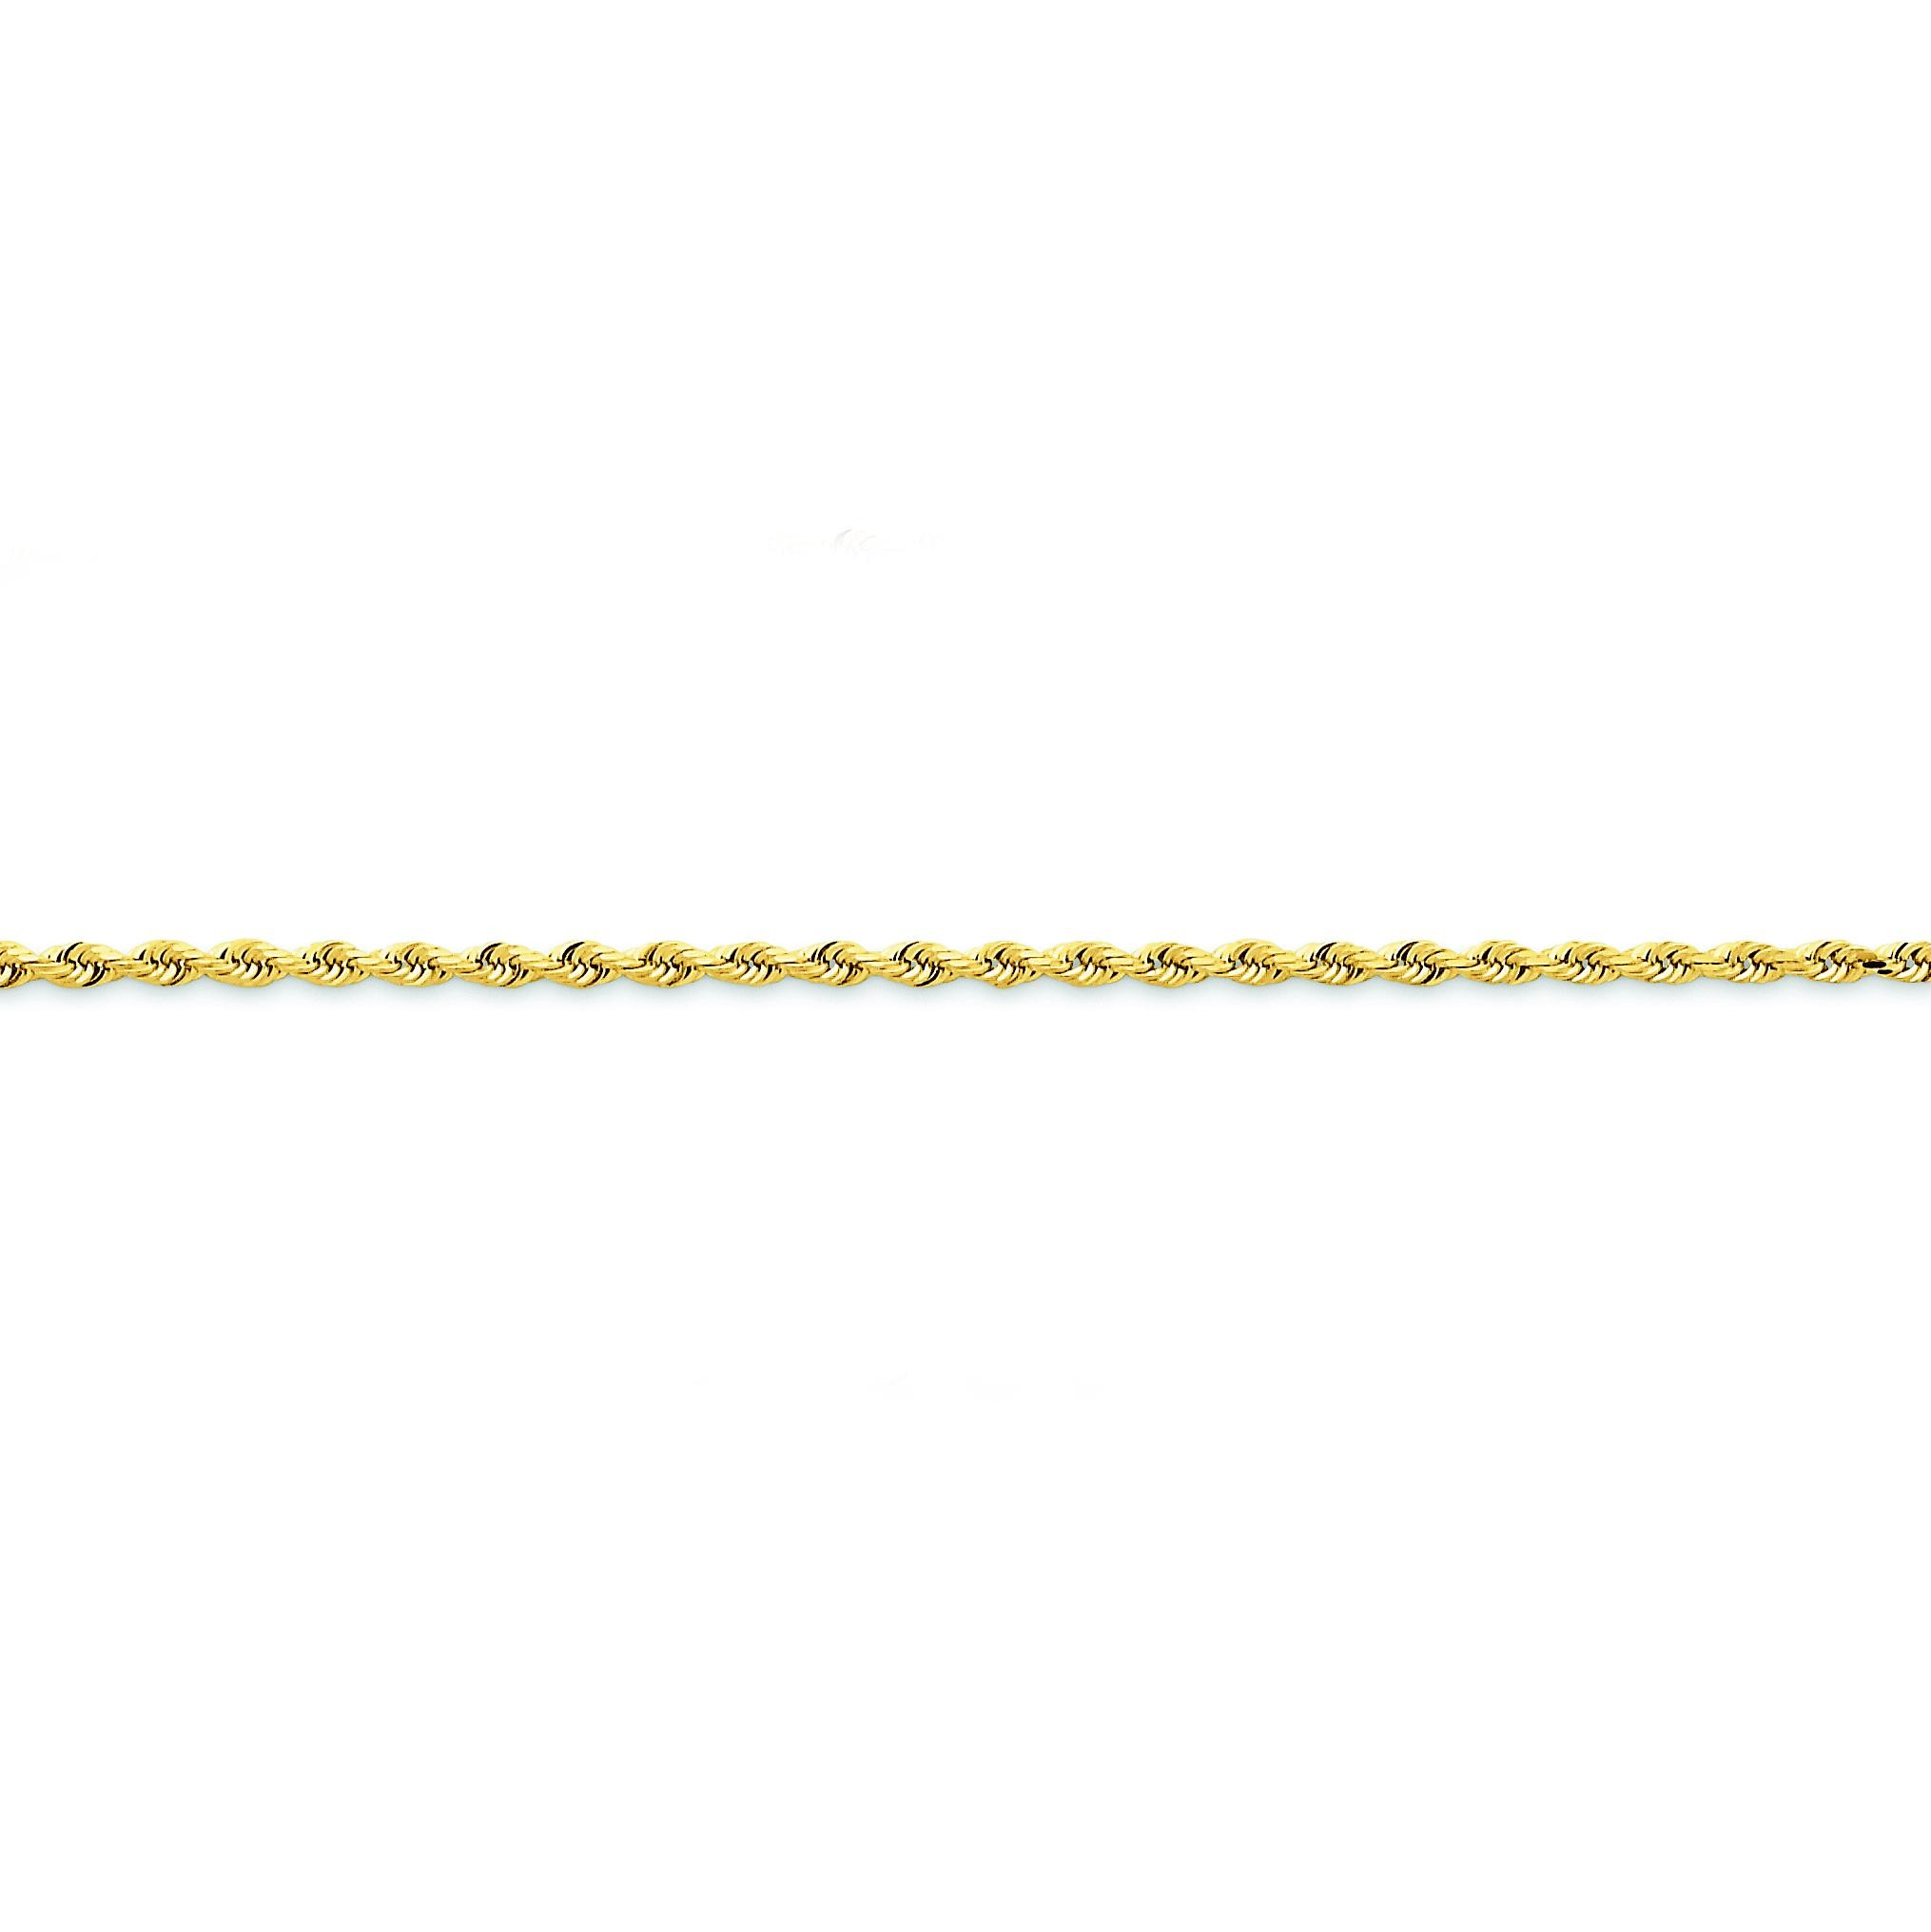 14k Yellow Gold 7 inch 2.25 mm Diamond-cut Quadruple Rope Chain Bracelet